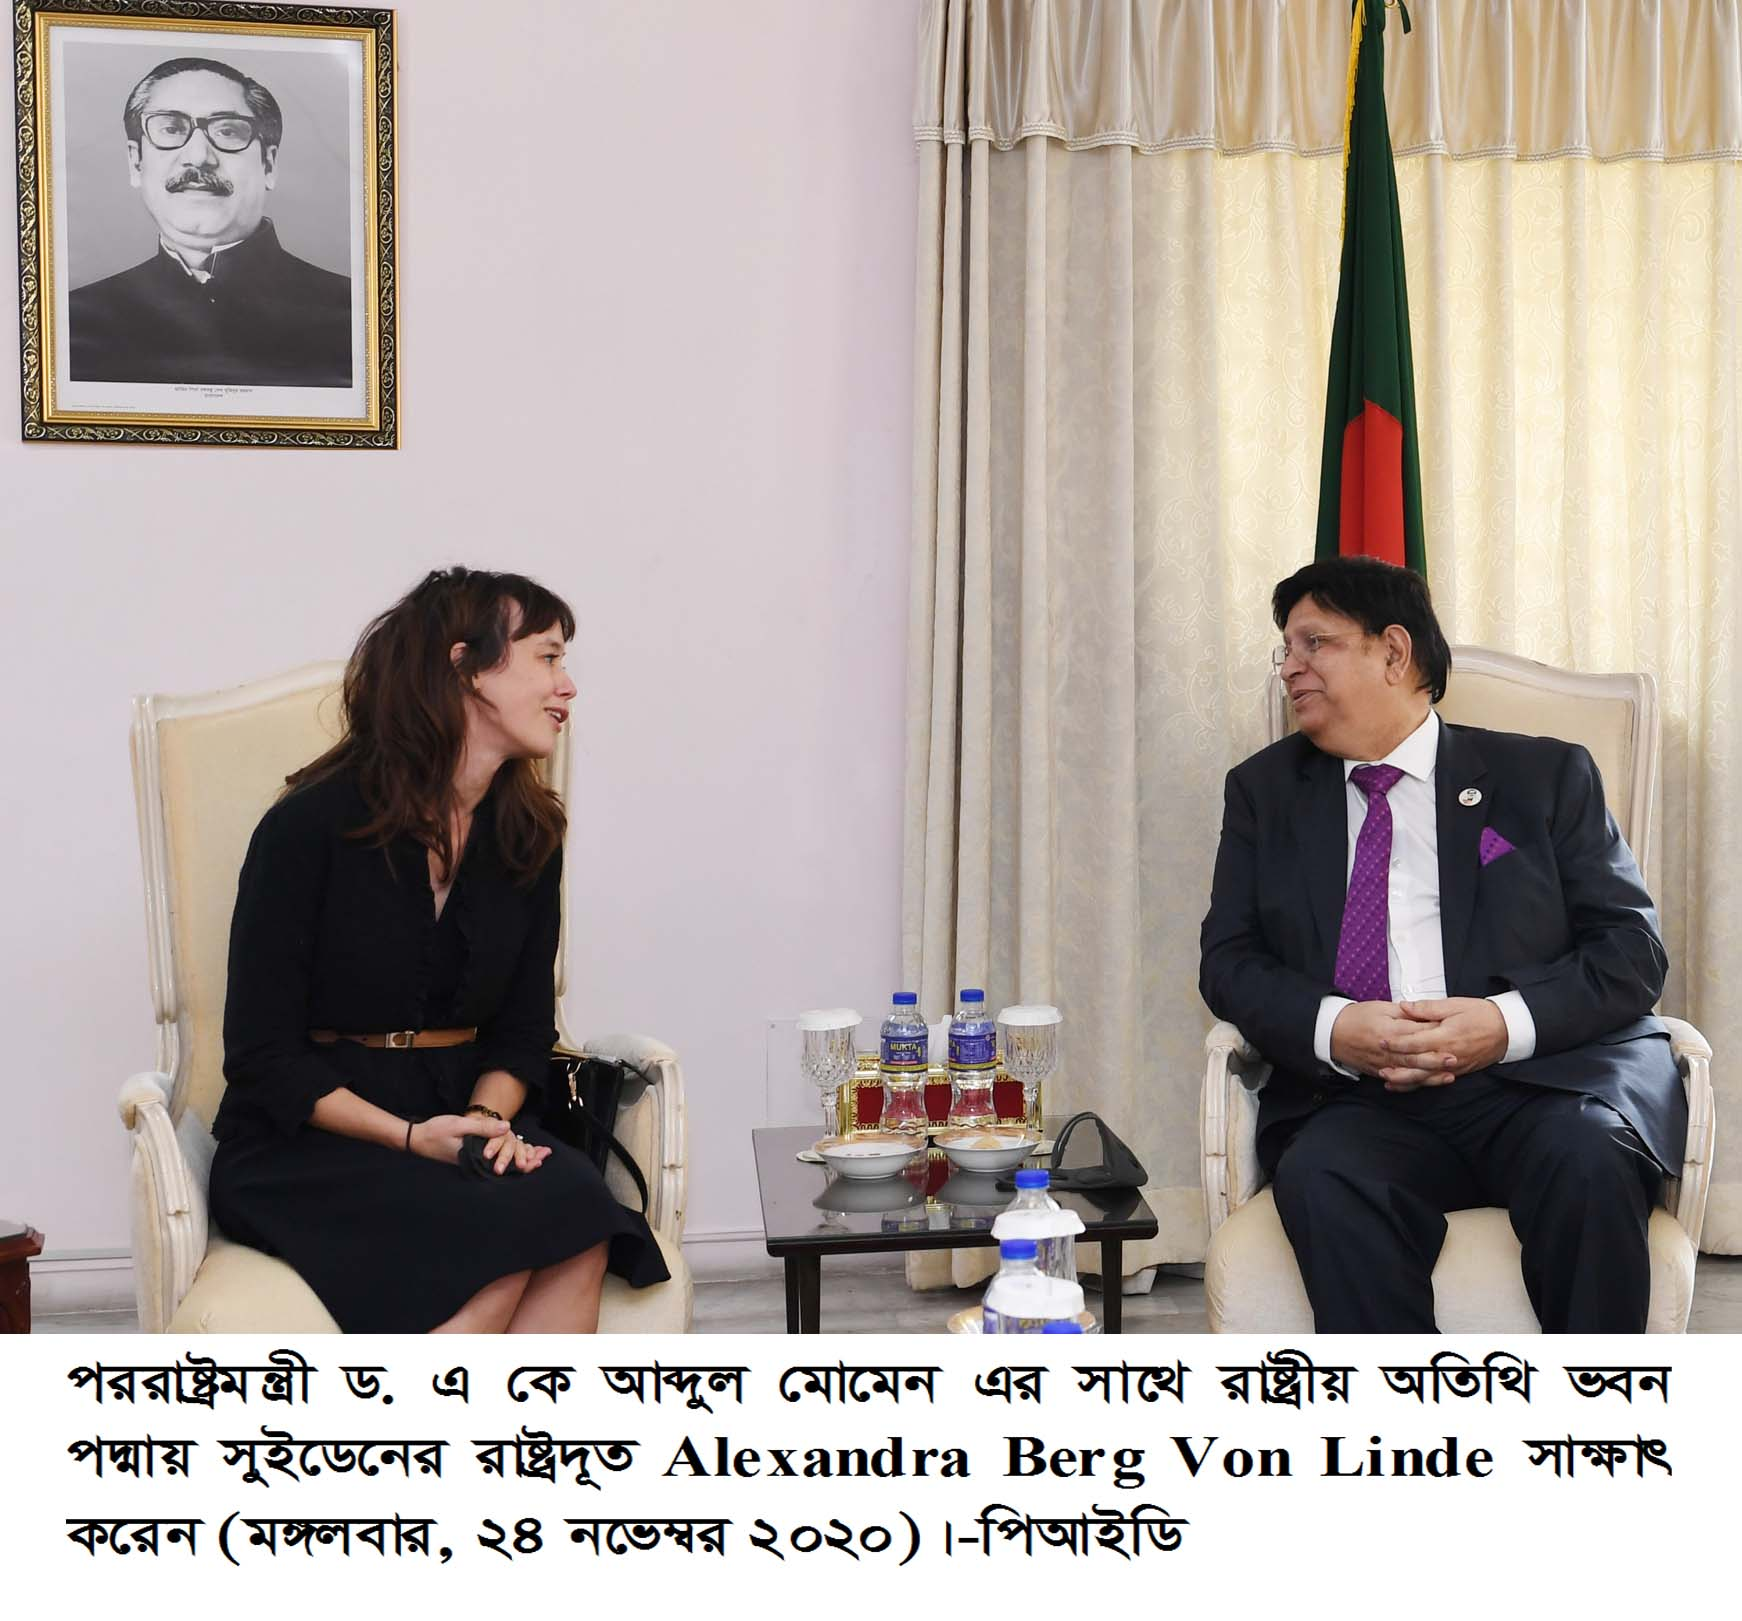 Momen attends crucial meeting with envoy